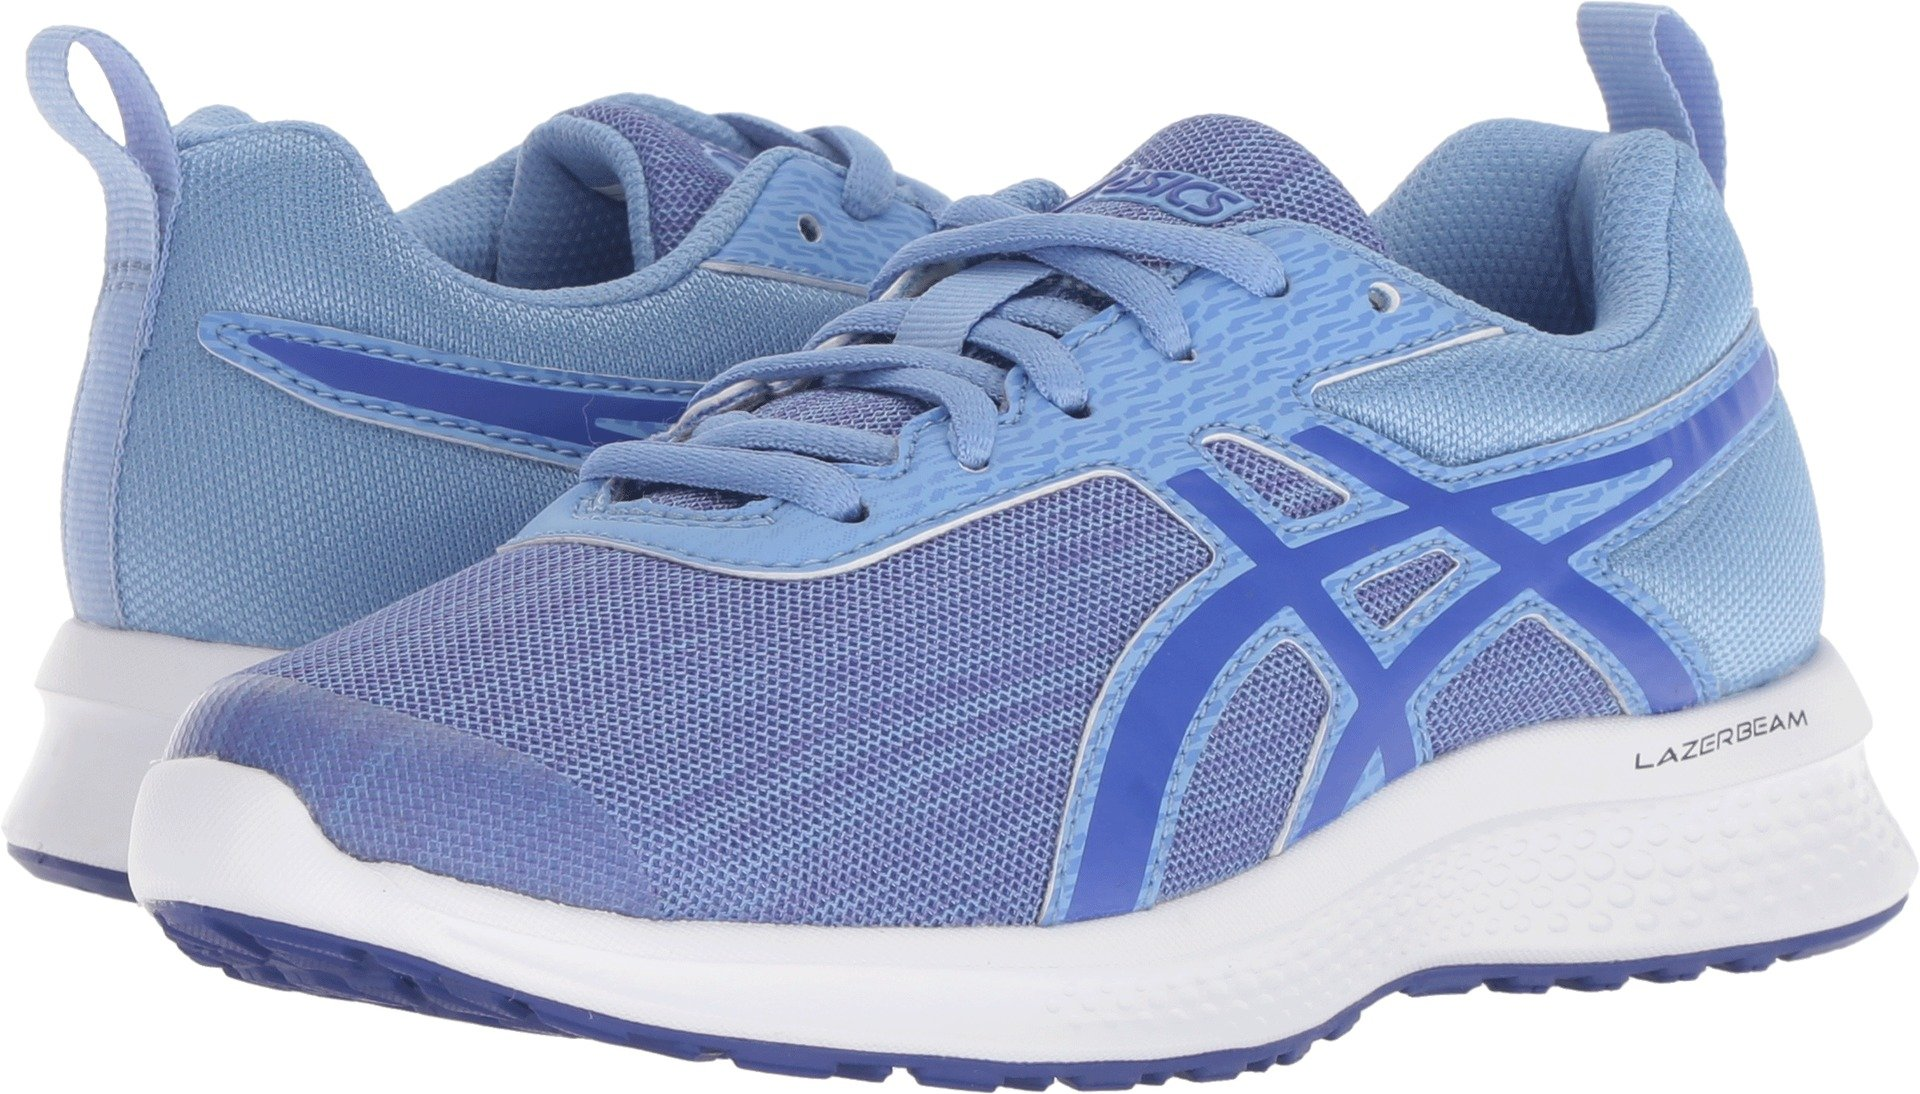 ASICS Kids Girl's Lazerbeam EA (Little Kid/Big Kid) Blue Bell/Imperial 1 M US Little Kid